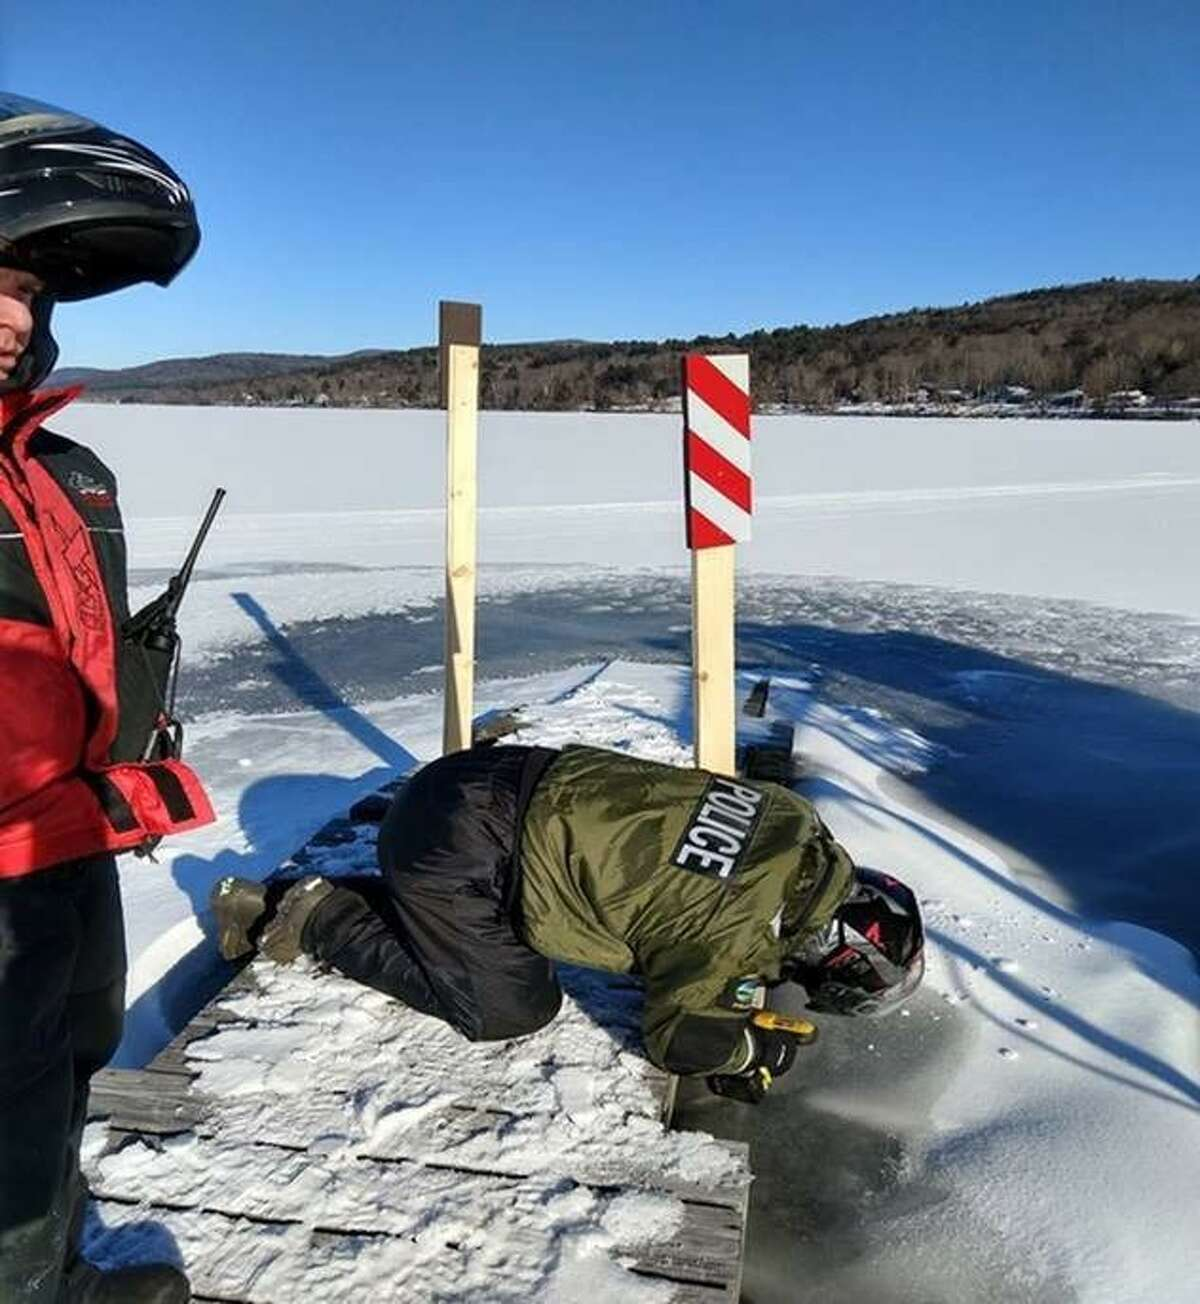 Rangers and ECOs deal with docks frozen in the ice of the Great Sacandaga Lake since the loose docks could be hazards to snowmobilers.